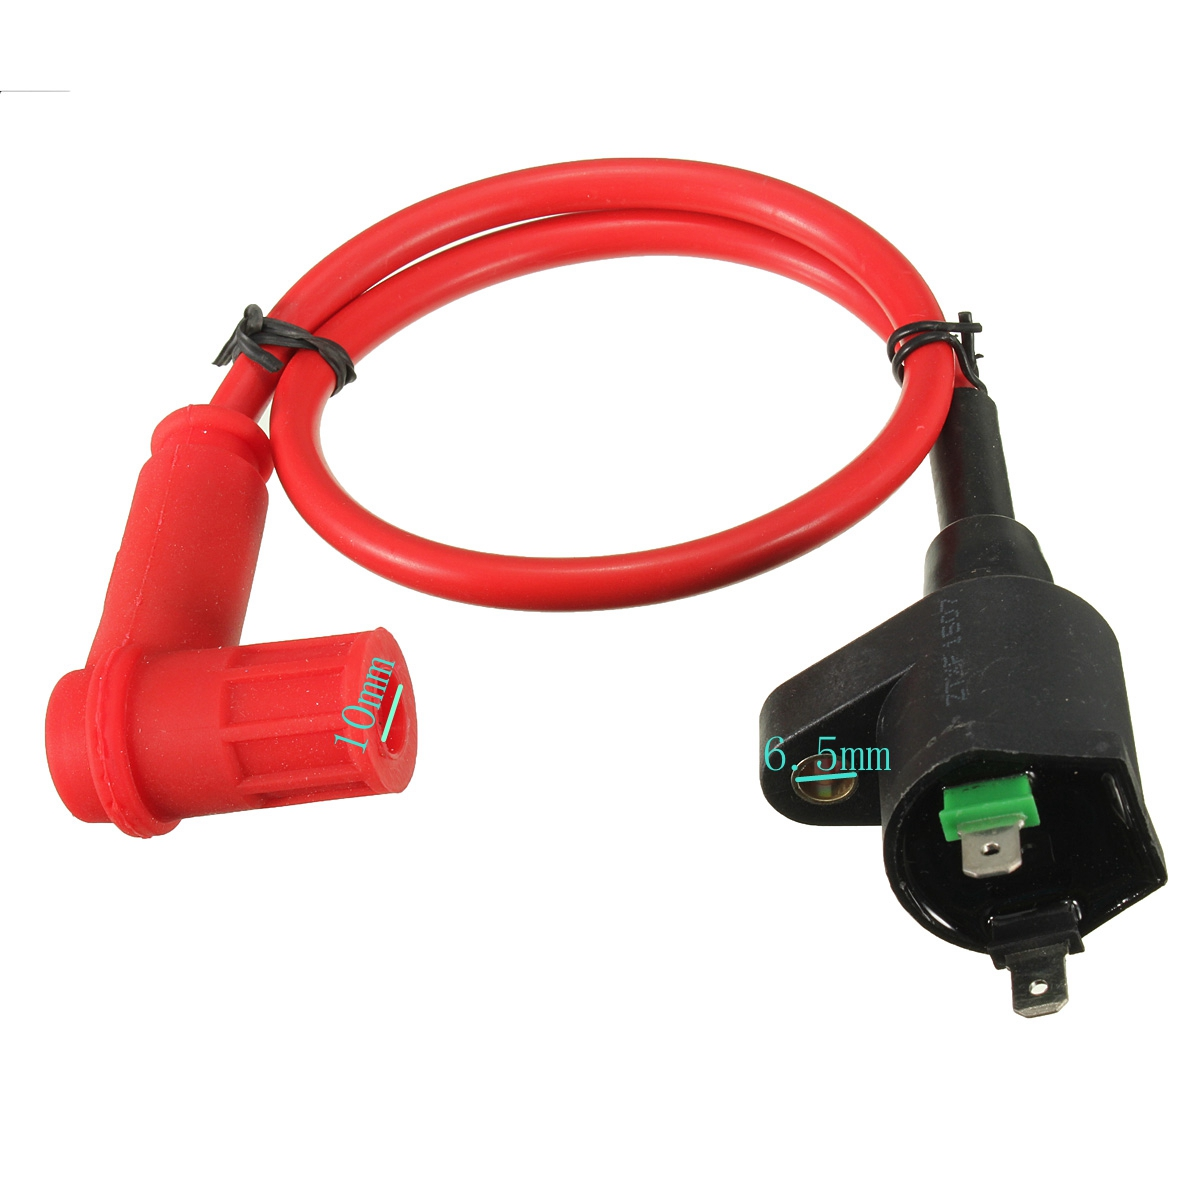 Wiring Loom Kill Switch Race Ignition Coil Cdi For 110cc 125cc Pit Harness Wireloom 50cc Atv Quad Bike Source Detail Image